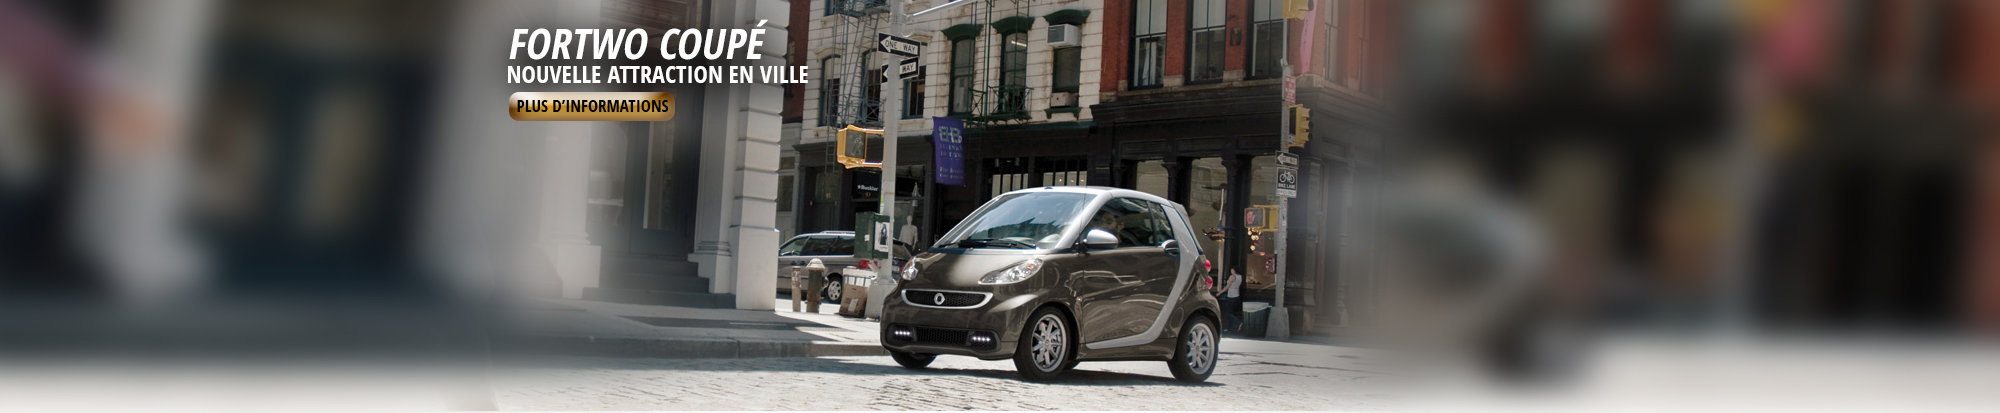 header home Fortwo coupé